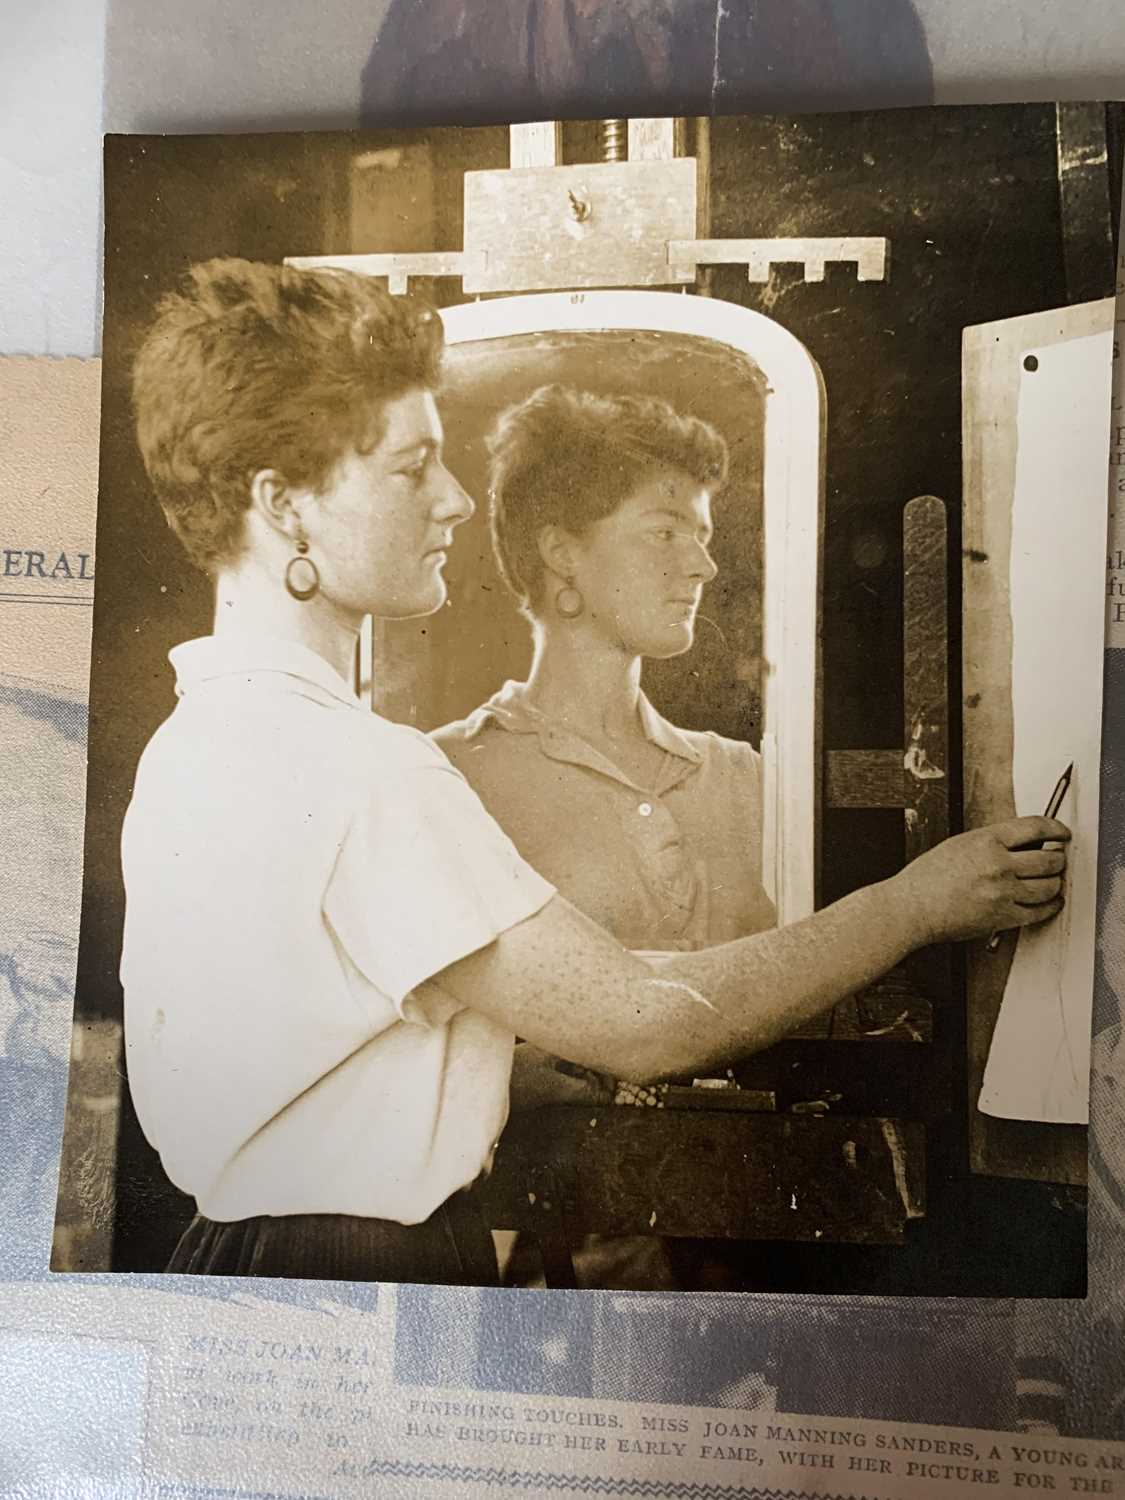 Joan Manning Sanders 1913-2002 Her personal archive. A fascinating collection of photographs and - Image 27 of 32